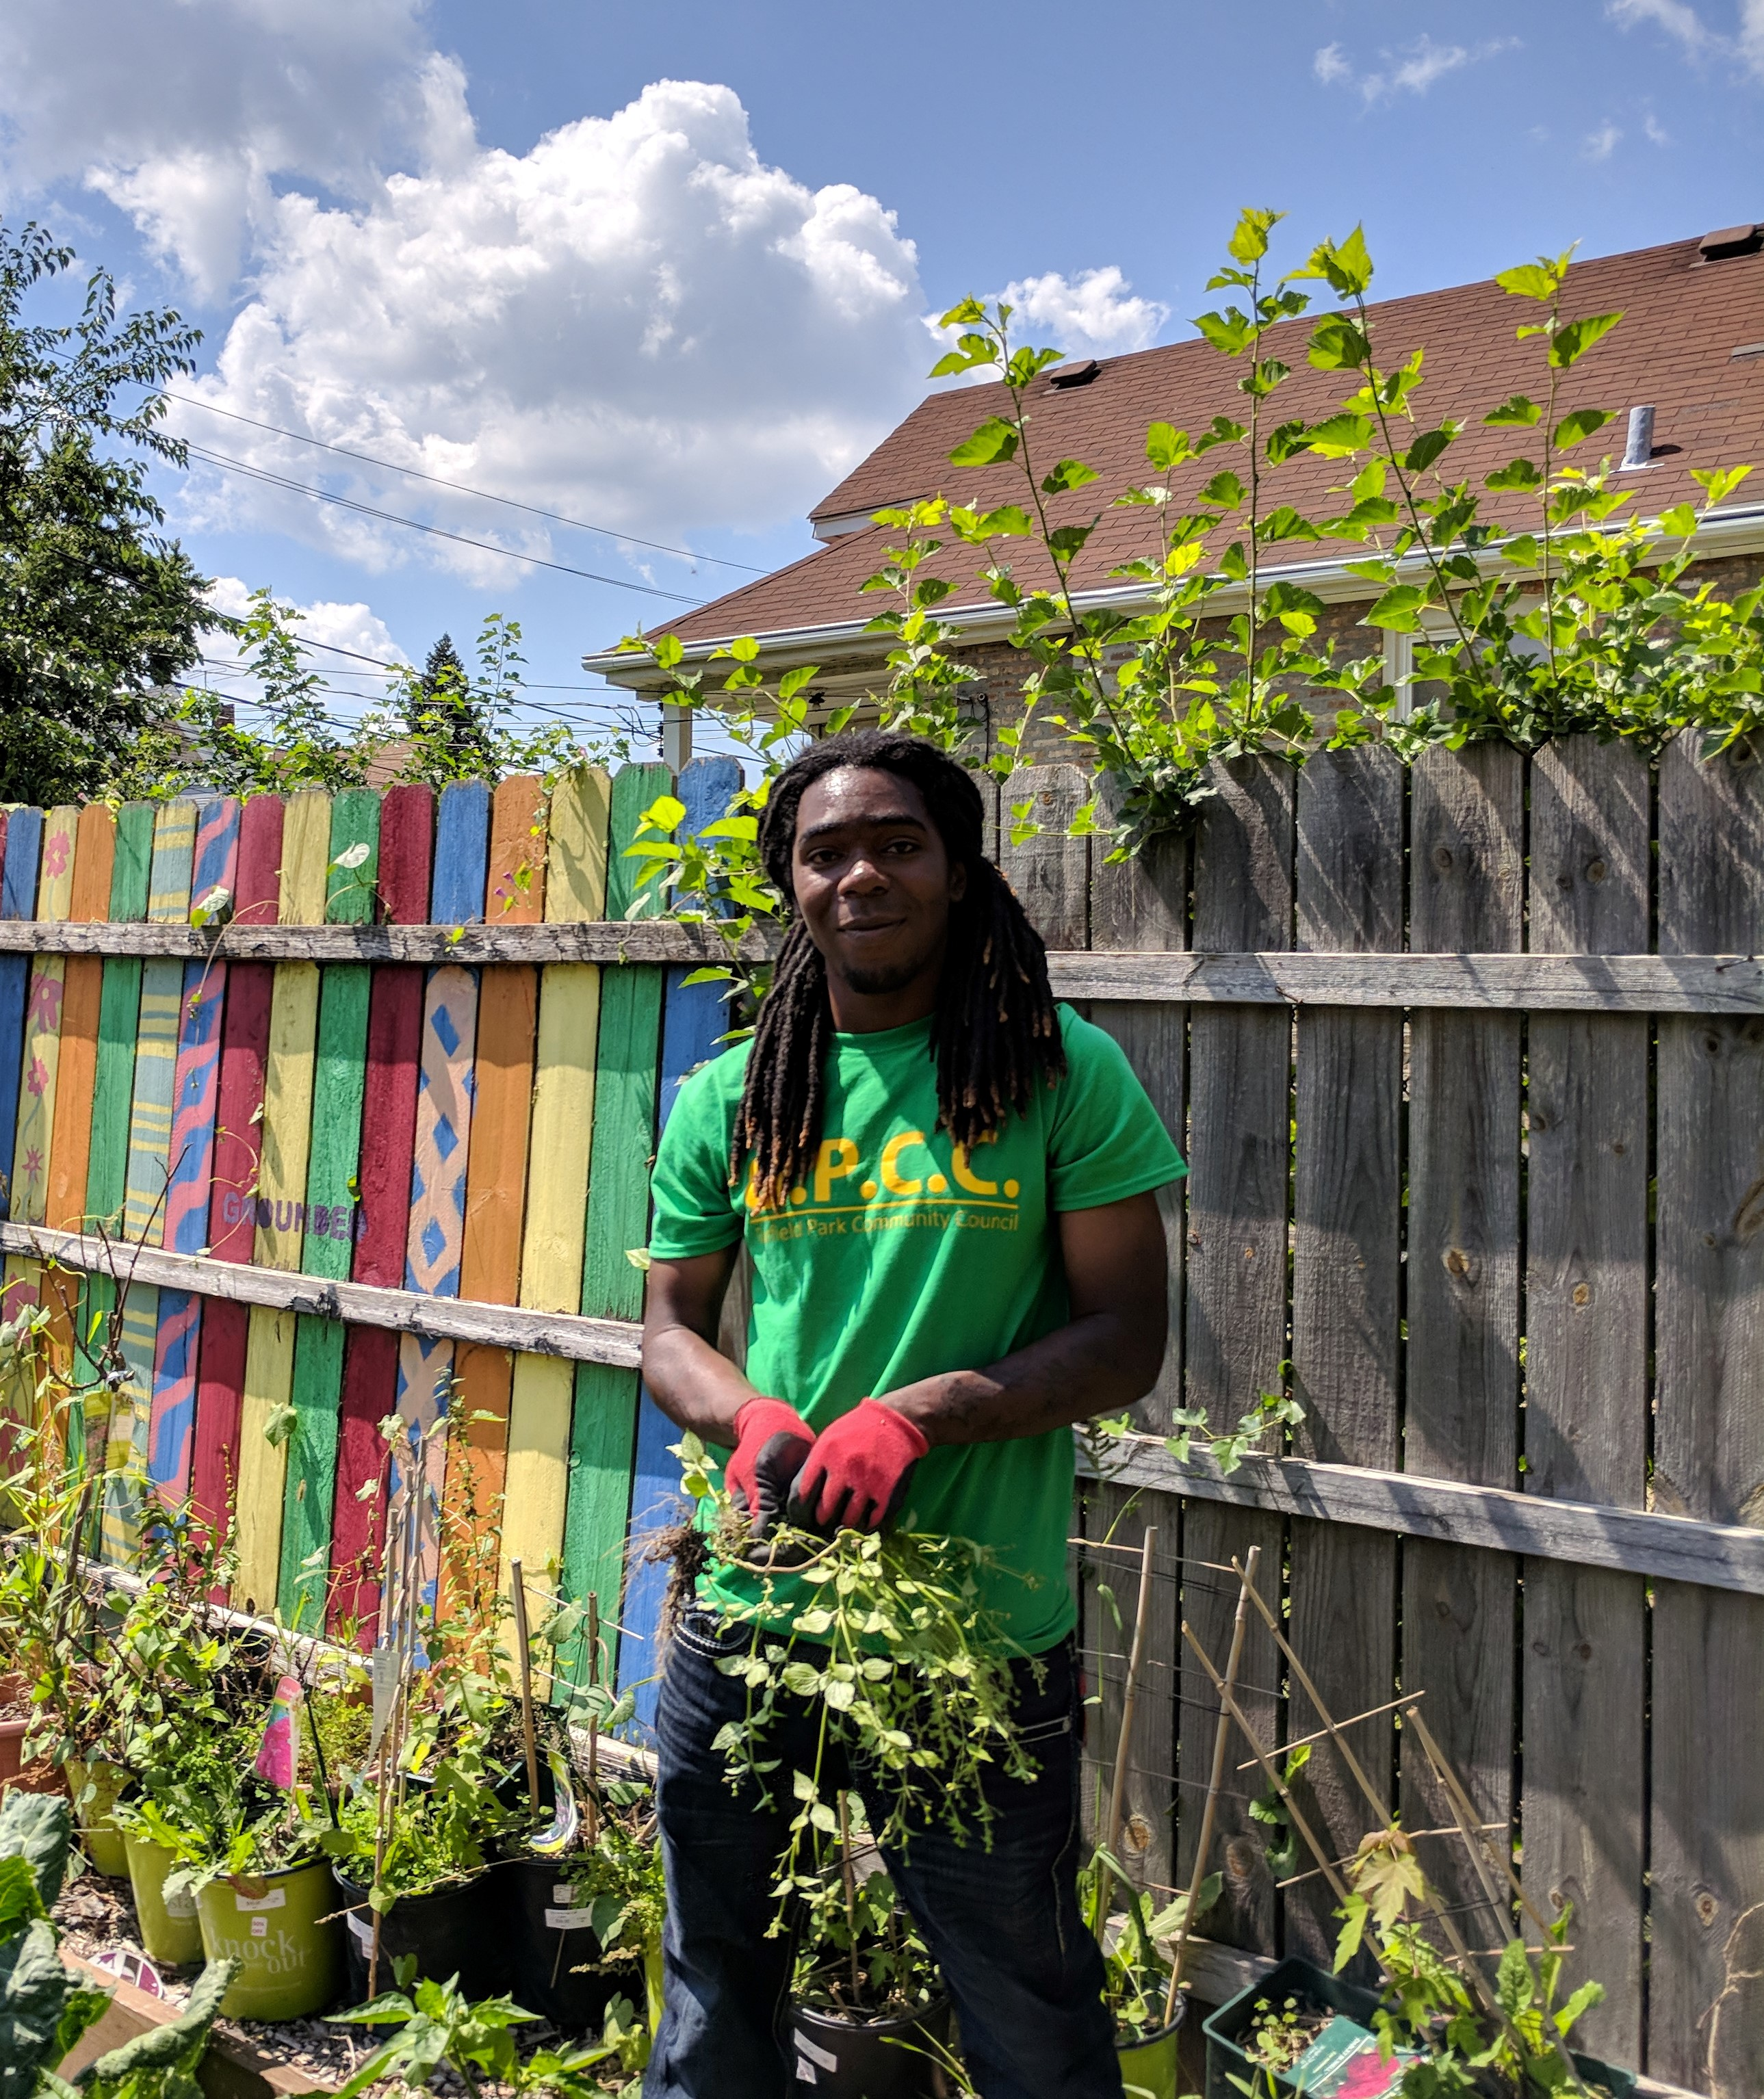 Youth Garden Corps member working in a local garden